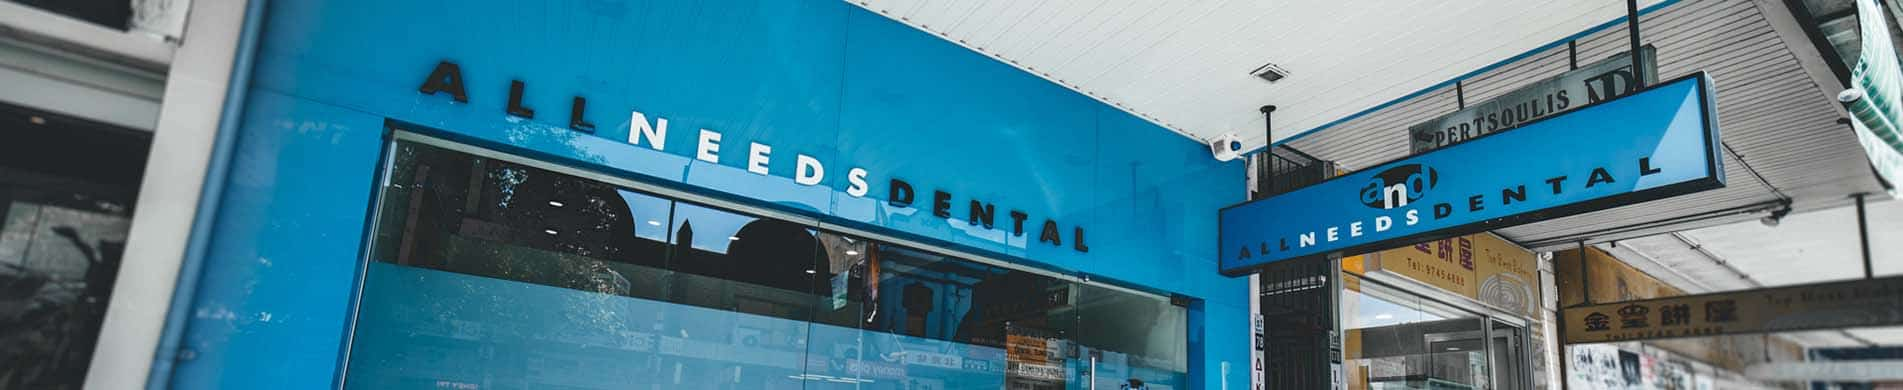 all needs dental, inner west sydney